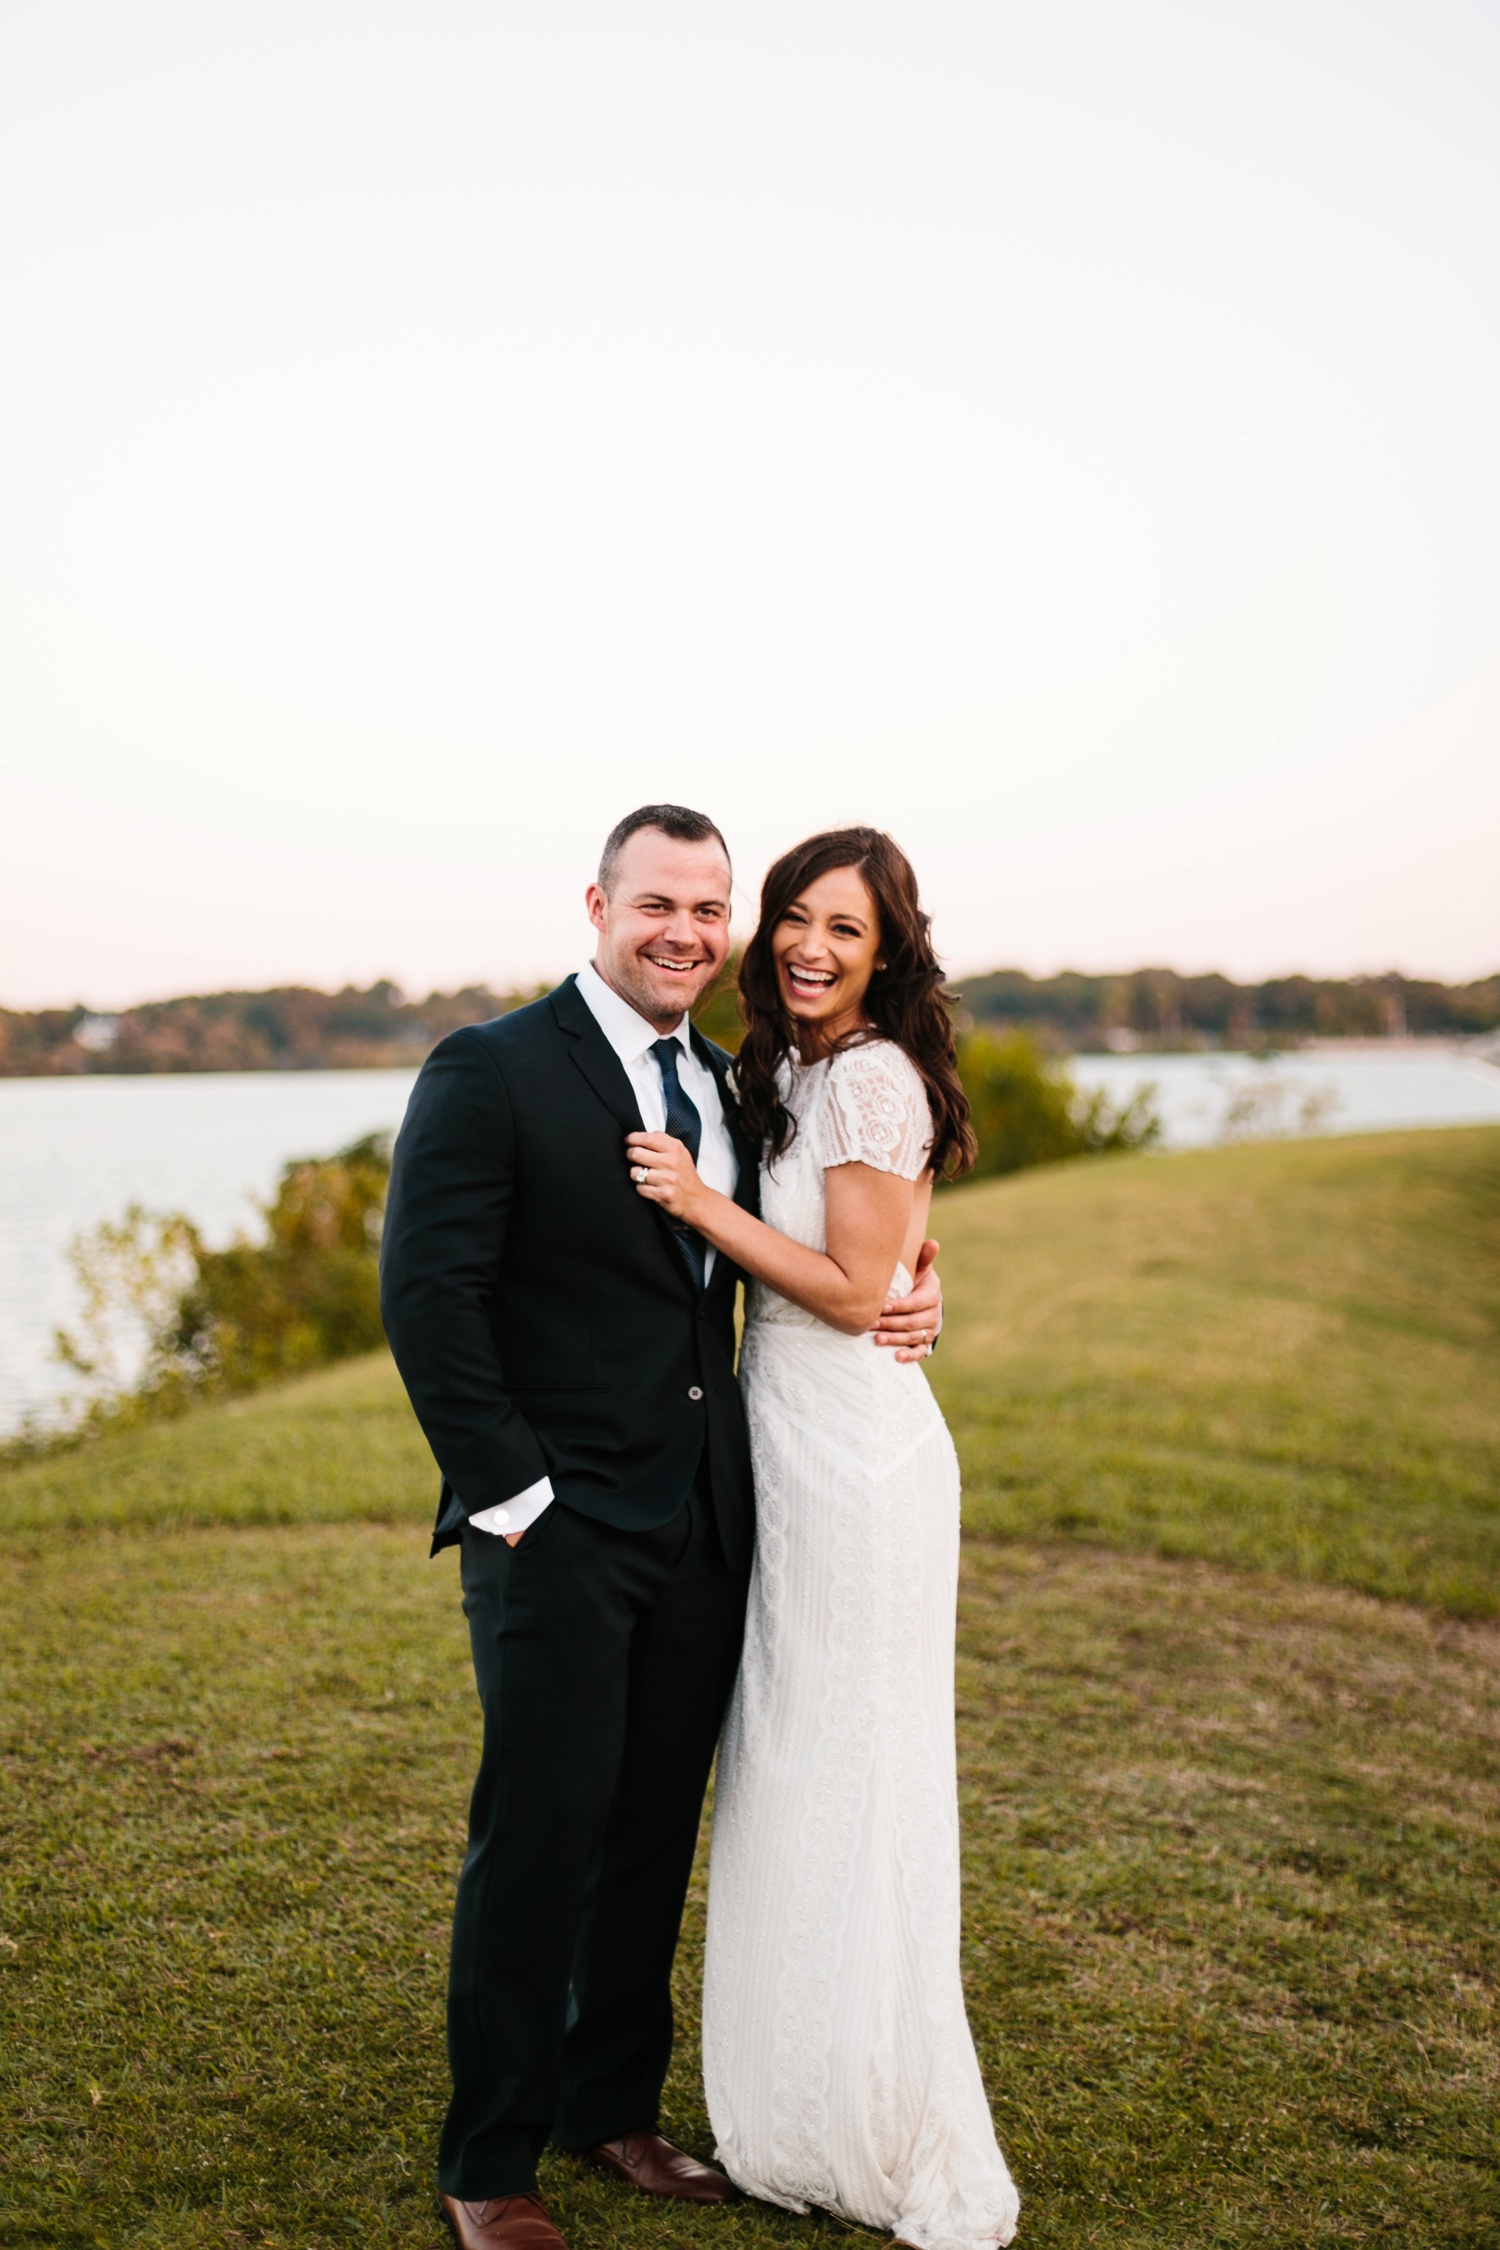 Kadee + Tyler | a raw, emotional wedding at the Filter Building on White Rock Lake in Dallas, TX by North Texas Wedding Photographer, Rachel Meagan Photography 181